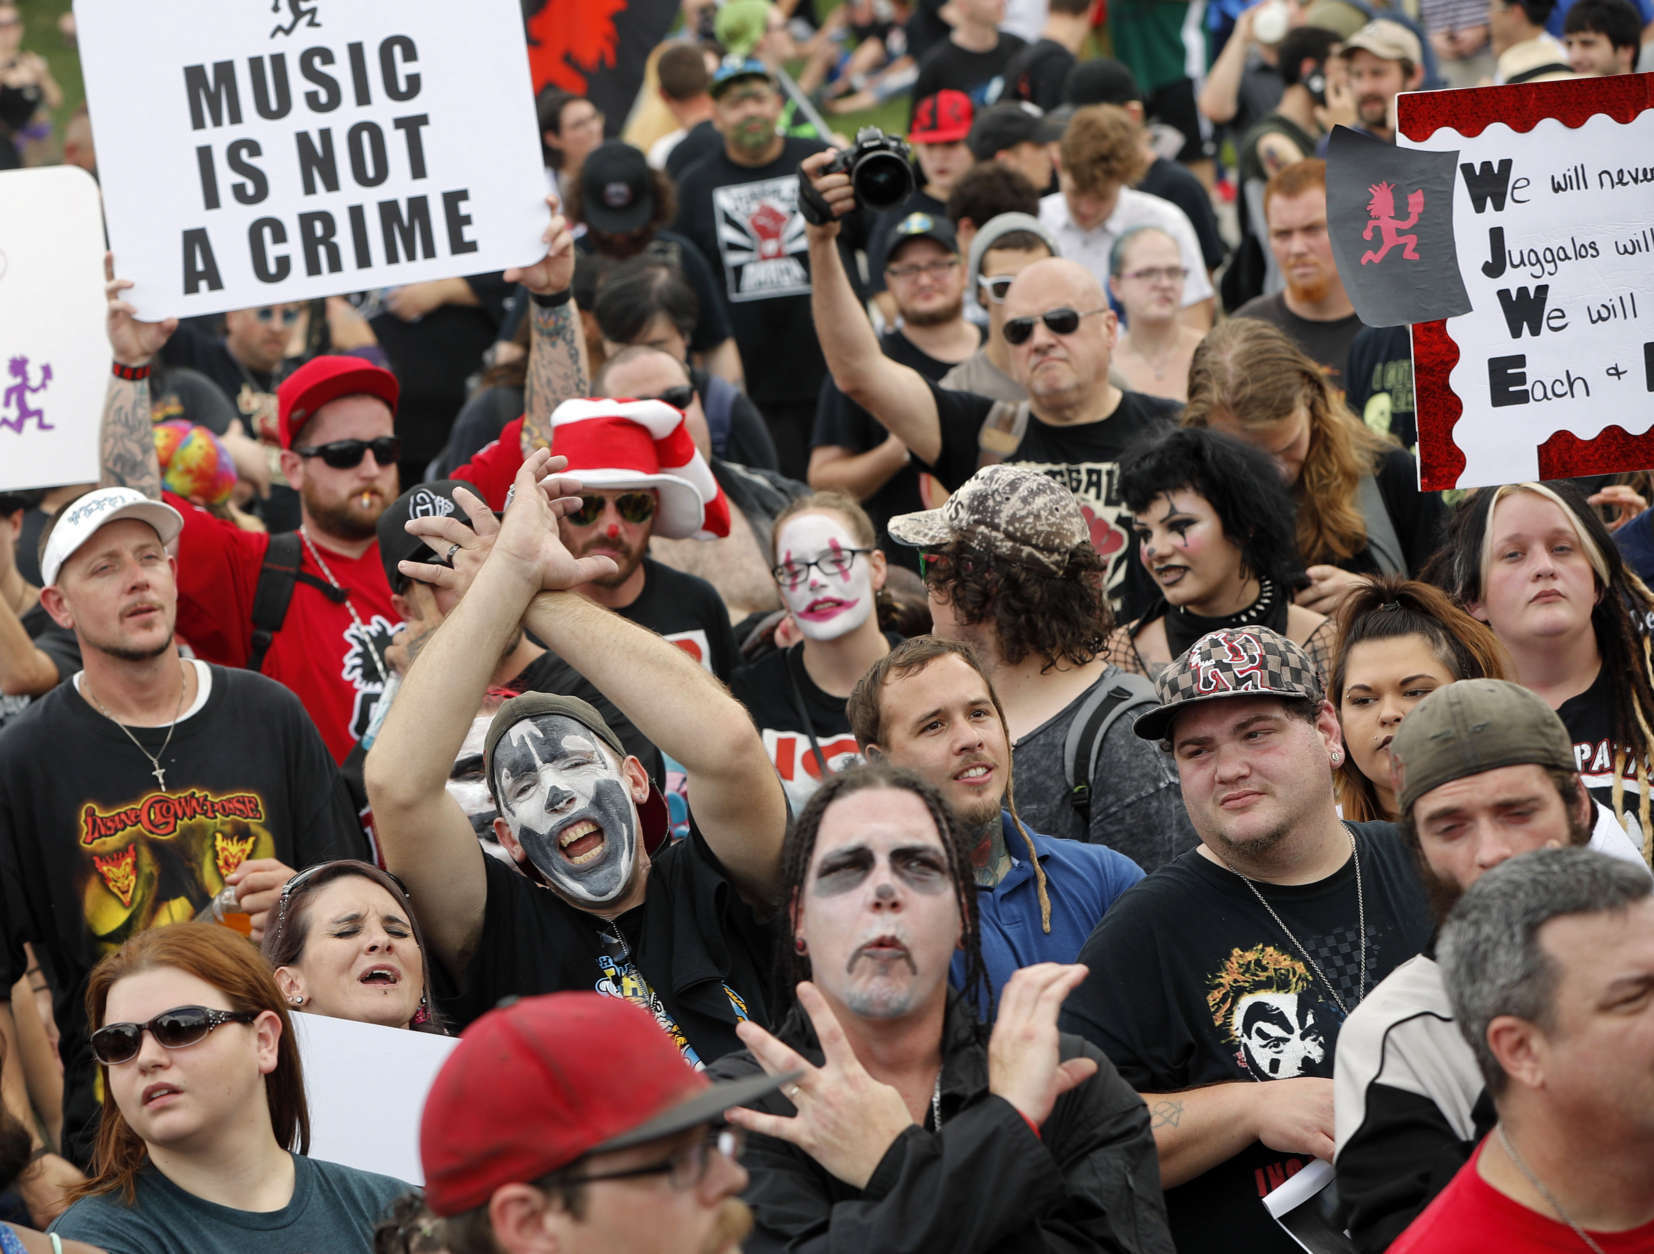 """Juggalos, as supporters of the rap group Insane Clown Posse are known, gather in front of the Lincoln Memorial in Washington during a rally, Saturday, Sept. 16, 2017, to protest and demand that the FBI rescind its classification of the juggalos as """"loosely organized hybrid gang."""" (AP Photo/Pablo Martinez Monsivais)"""